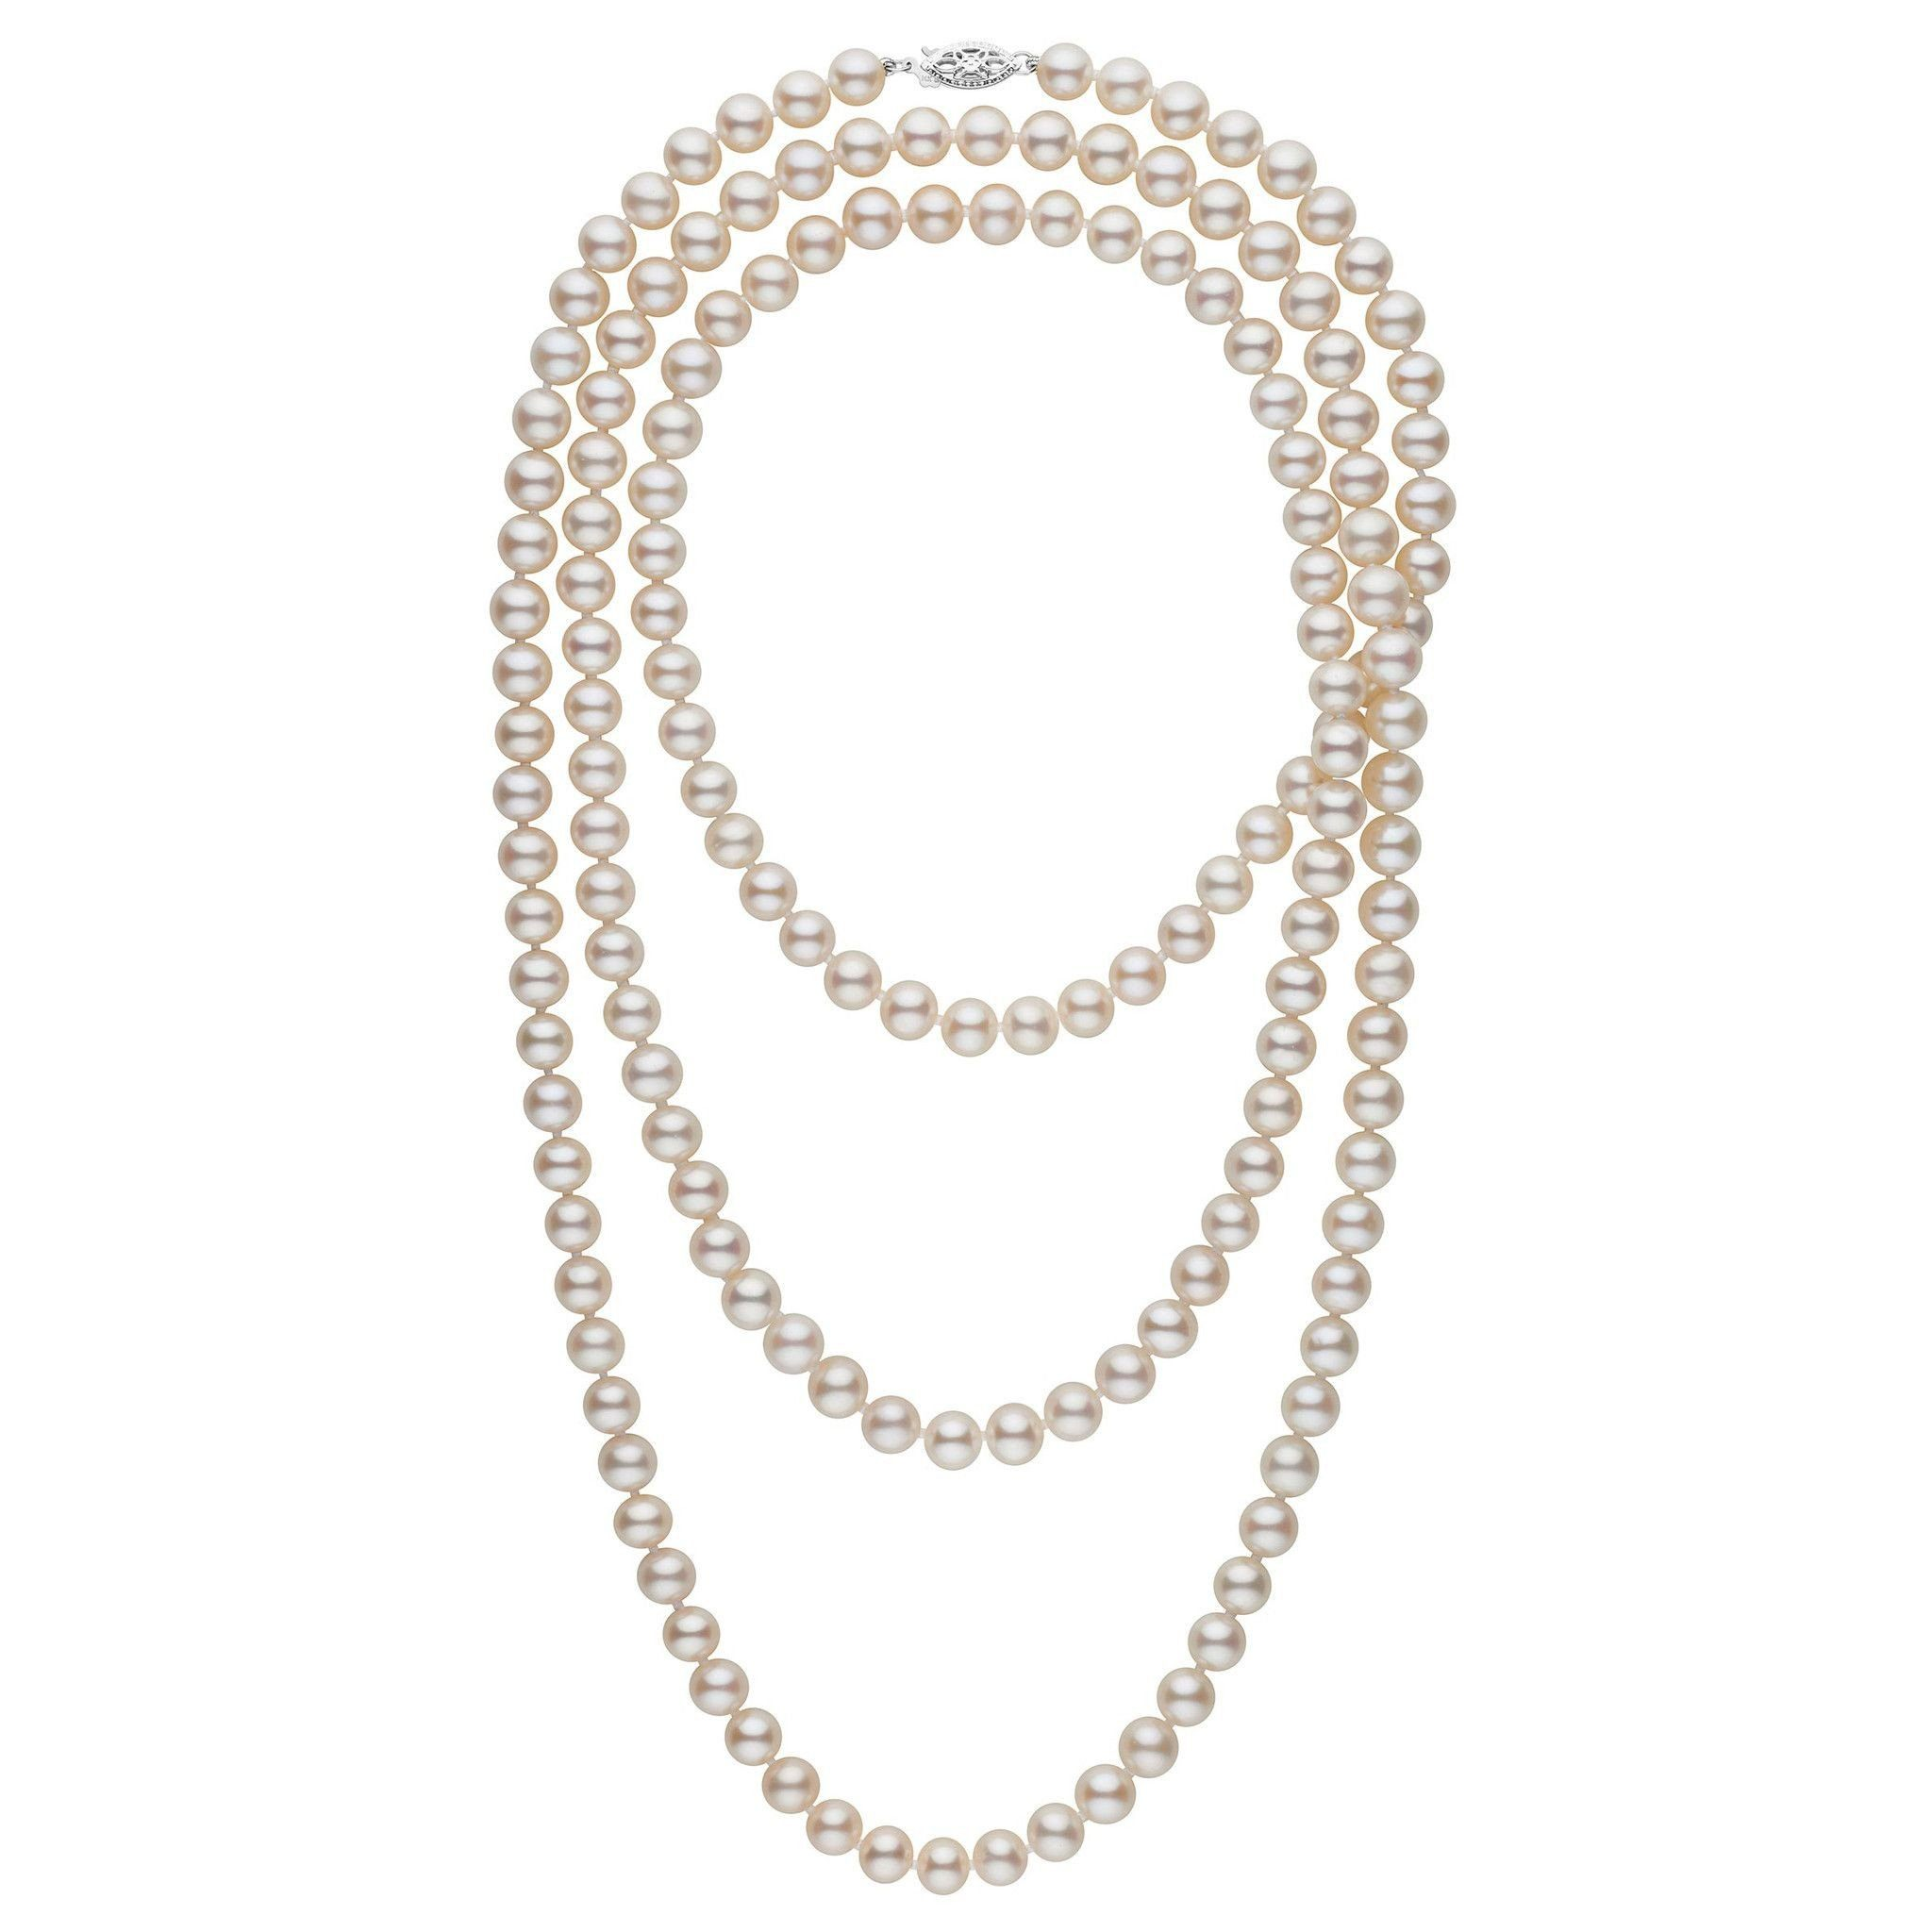 52-inch 7.5-8.0 mm AAA White Freshwater Pearl Necklace